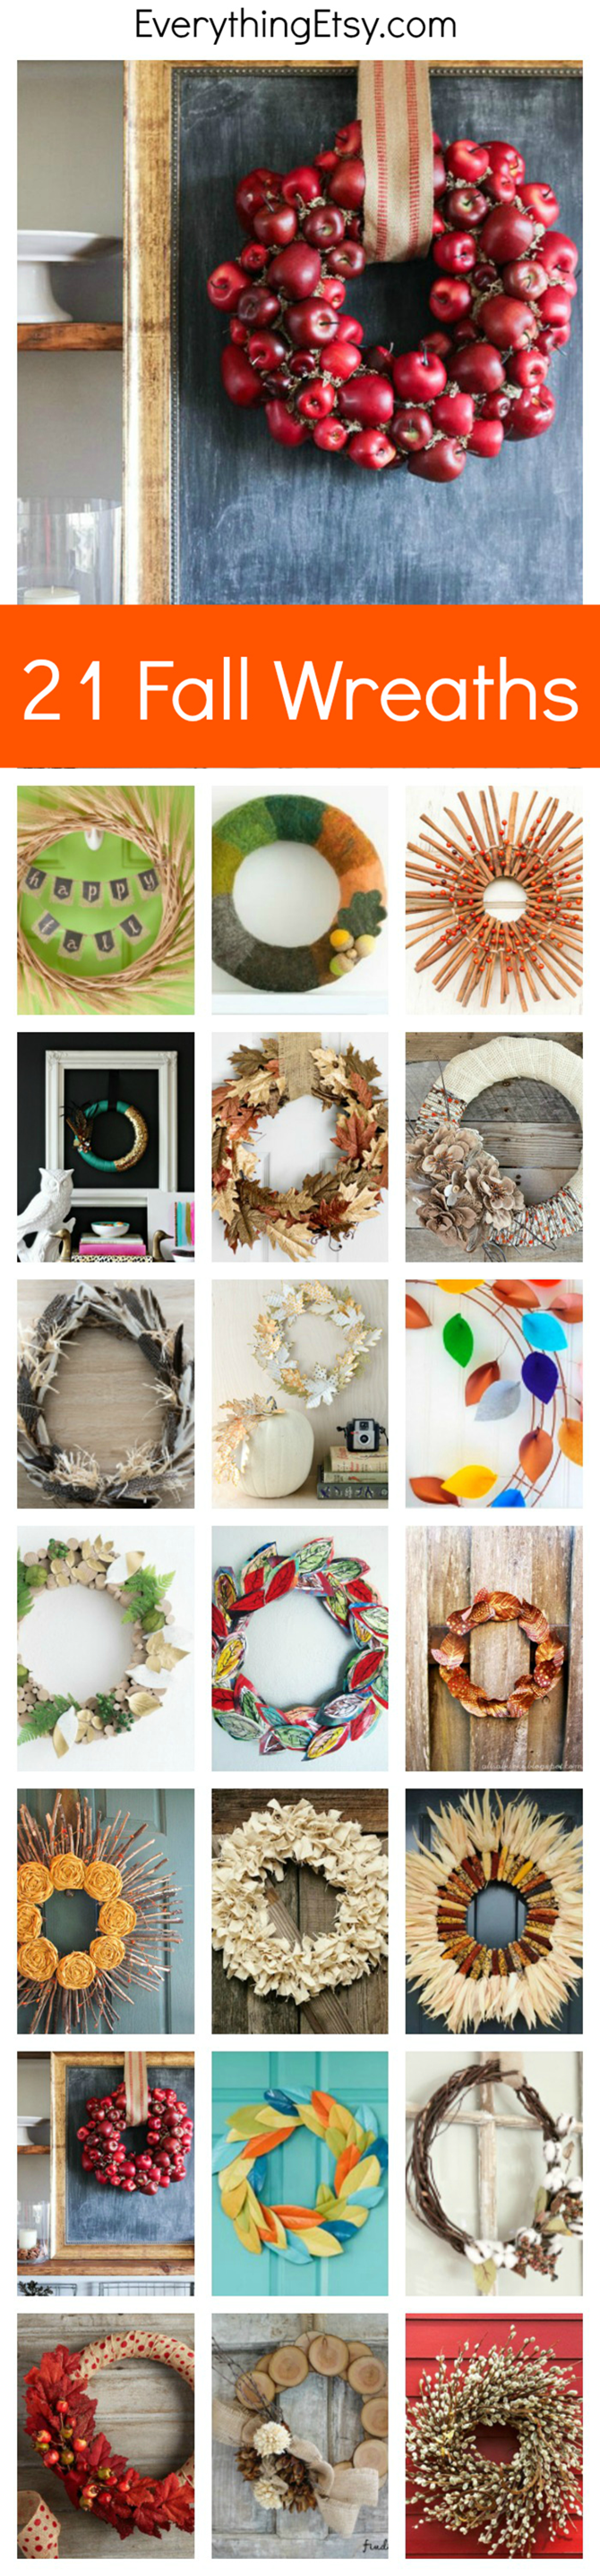 21 Fall Wreath Ideas That DIY Dreams are Made of... EverythingEtsy